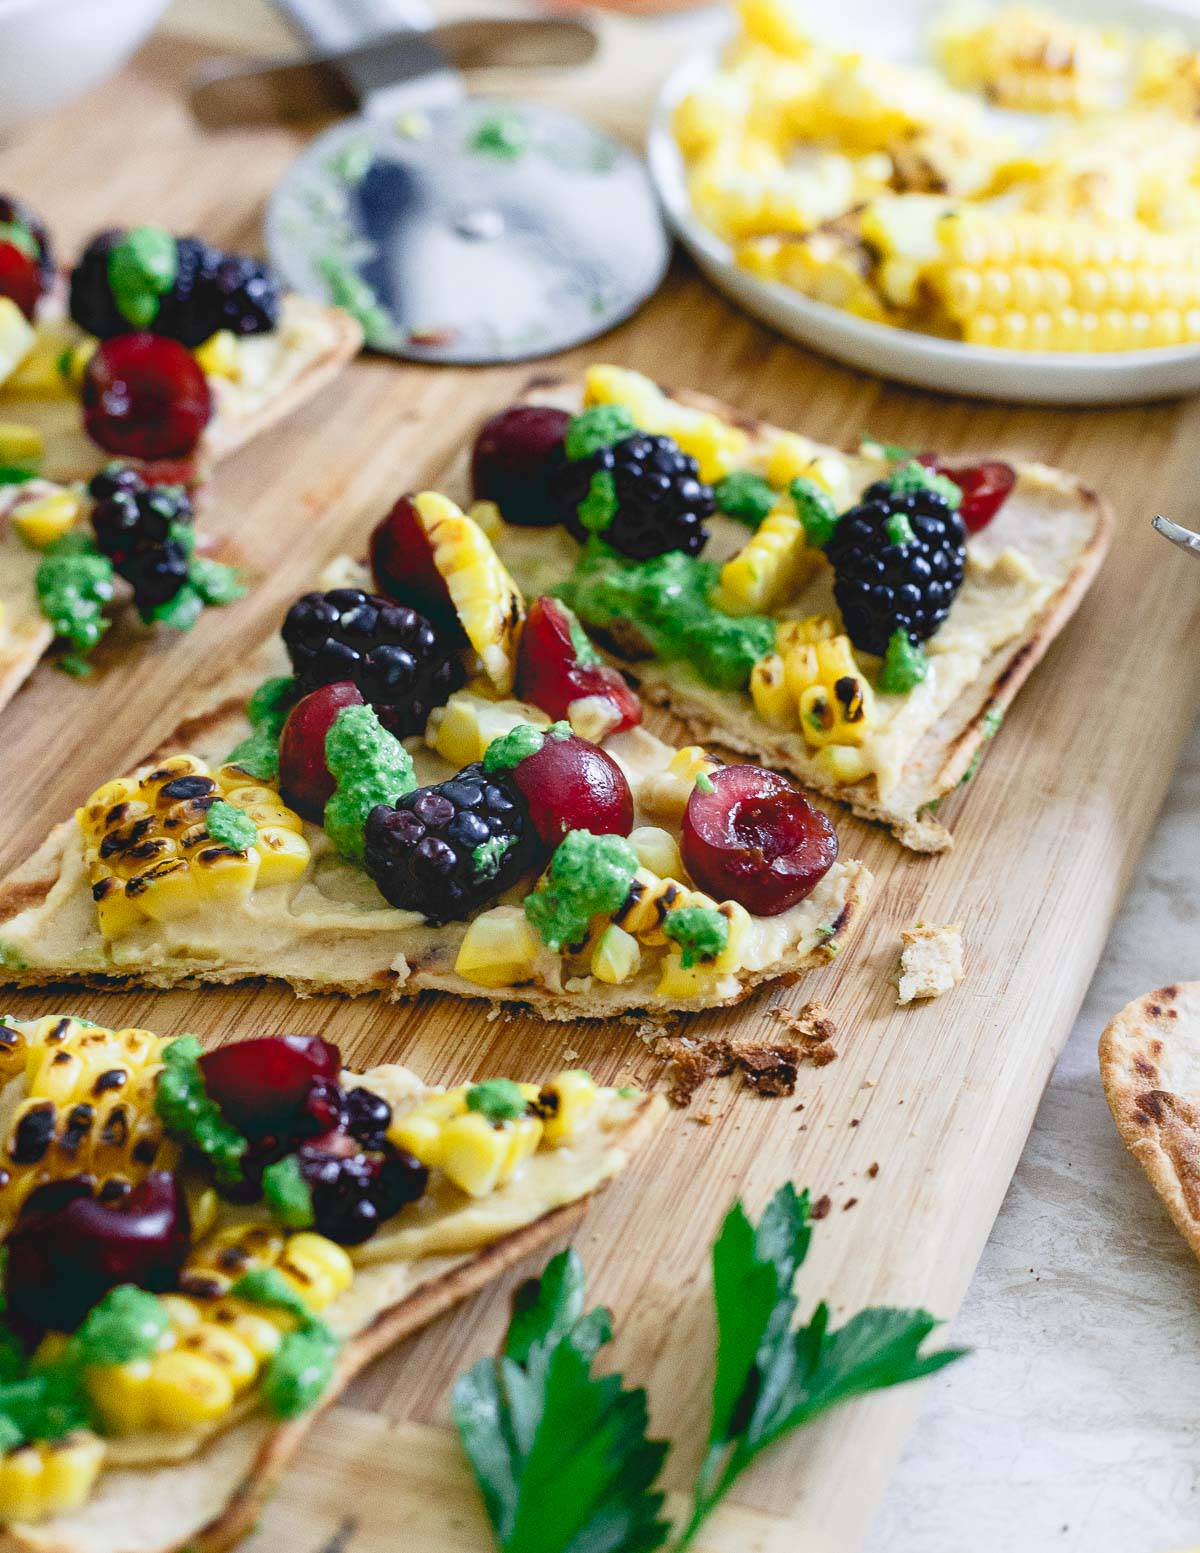 This summer inspired hummus flatbread is topped with grilled corn, berries and drizzled with a fresh roasted garlic parsley pesto. A great pre-dinner bite!